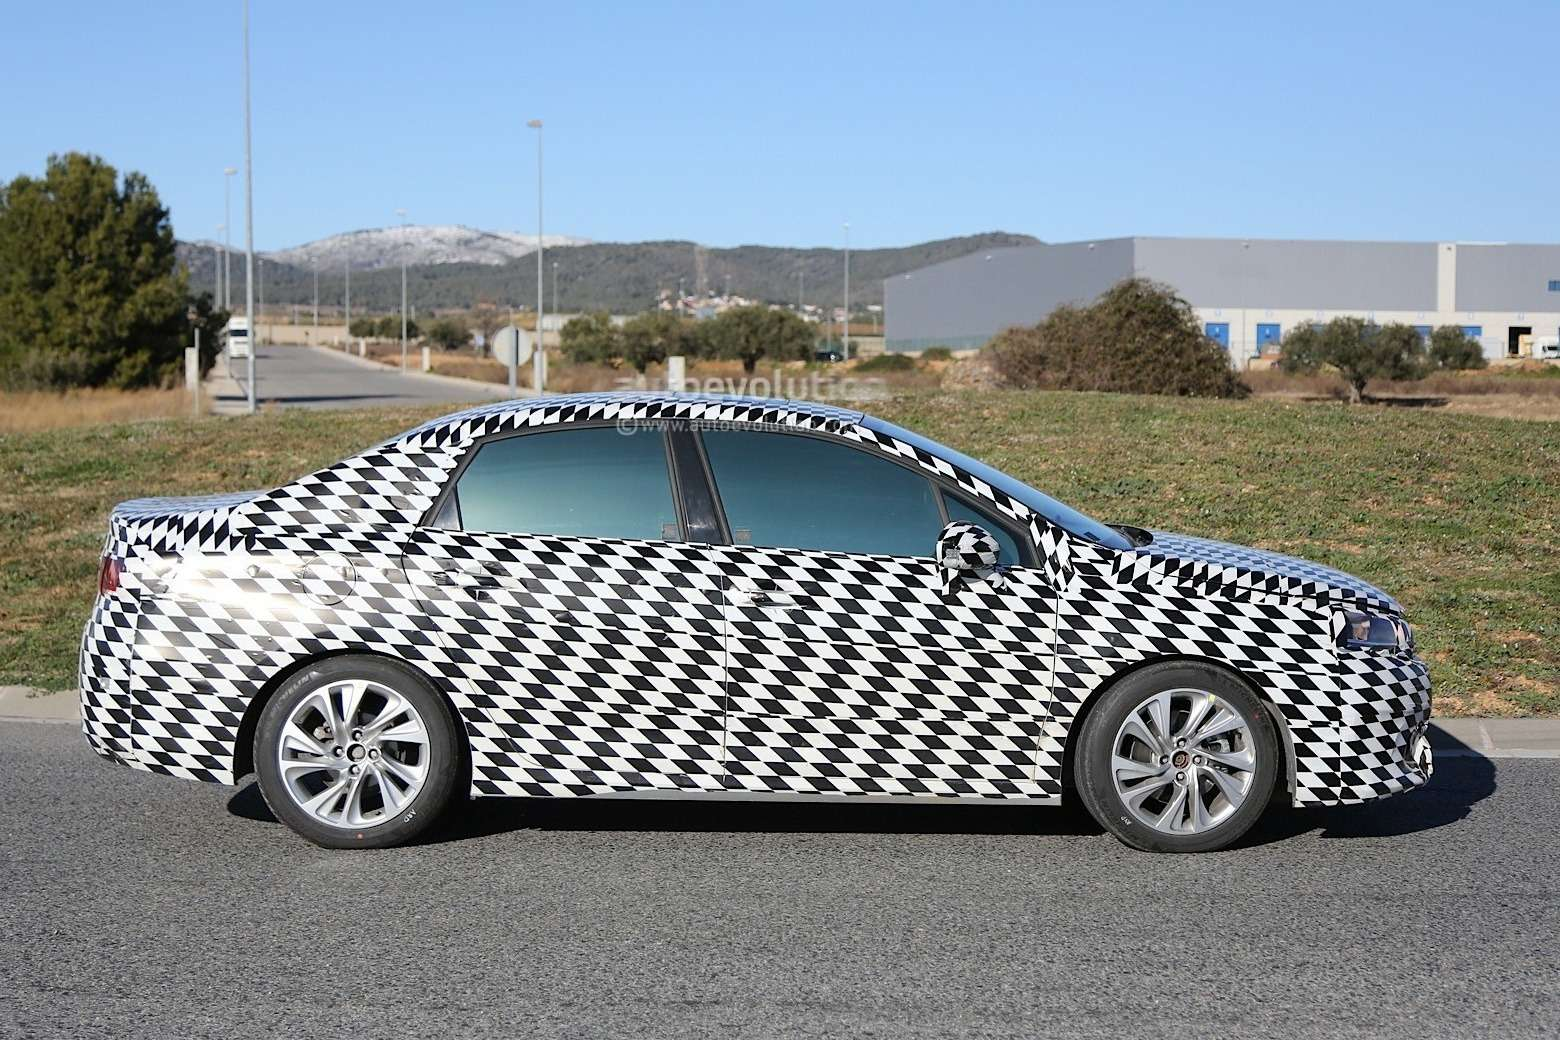 mystery-citroen-compact-sedan-spied-testing-in-spain-could-be-the-new-c4-lunge_8